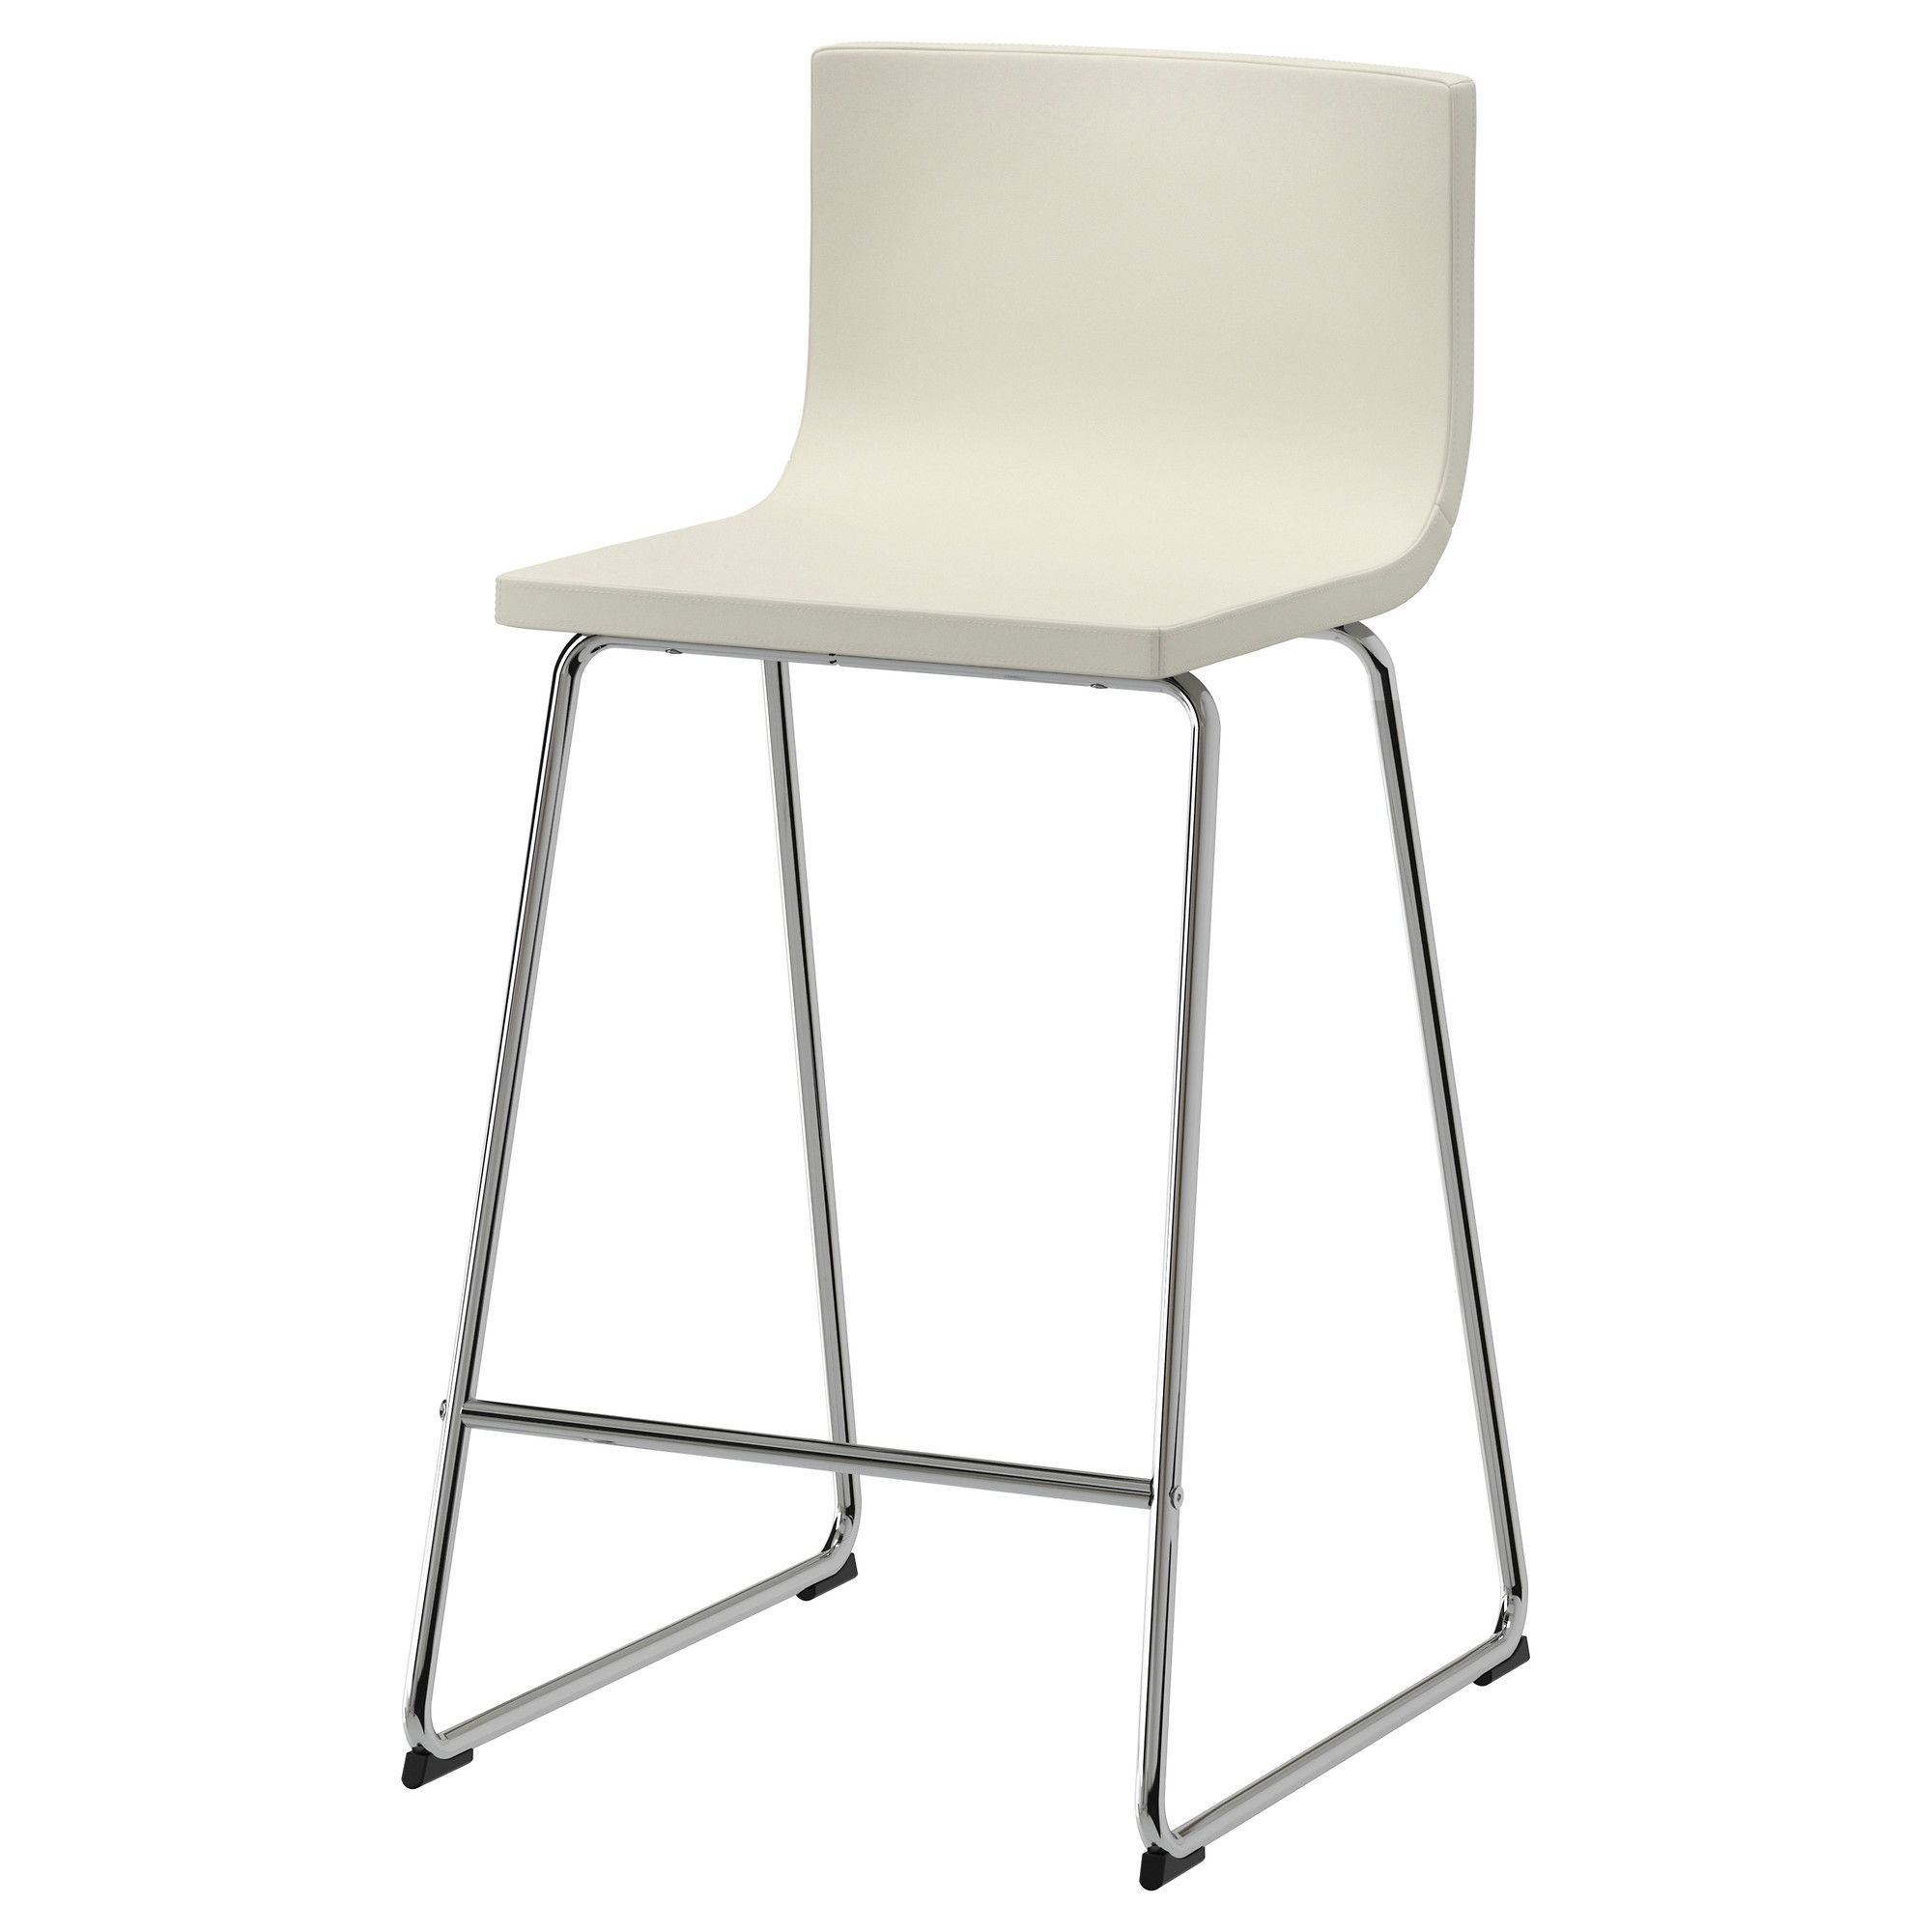 Unique Ikea Glenn Bar Stool Review